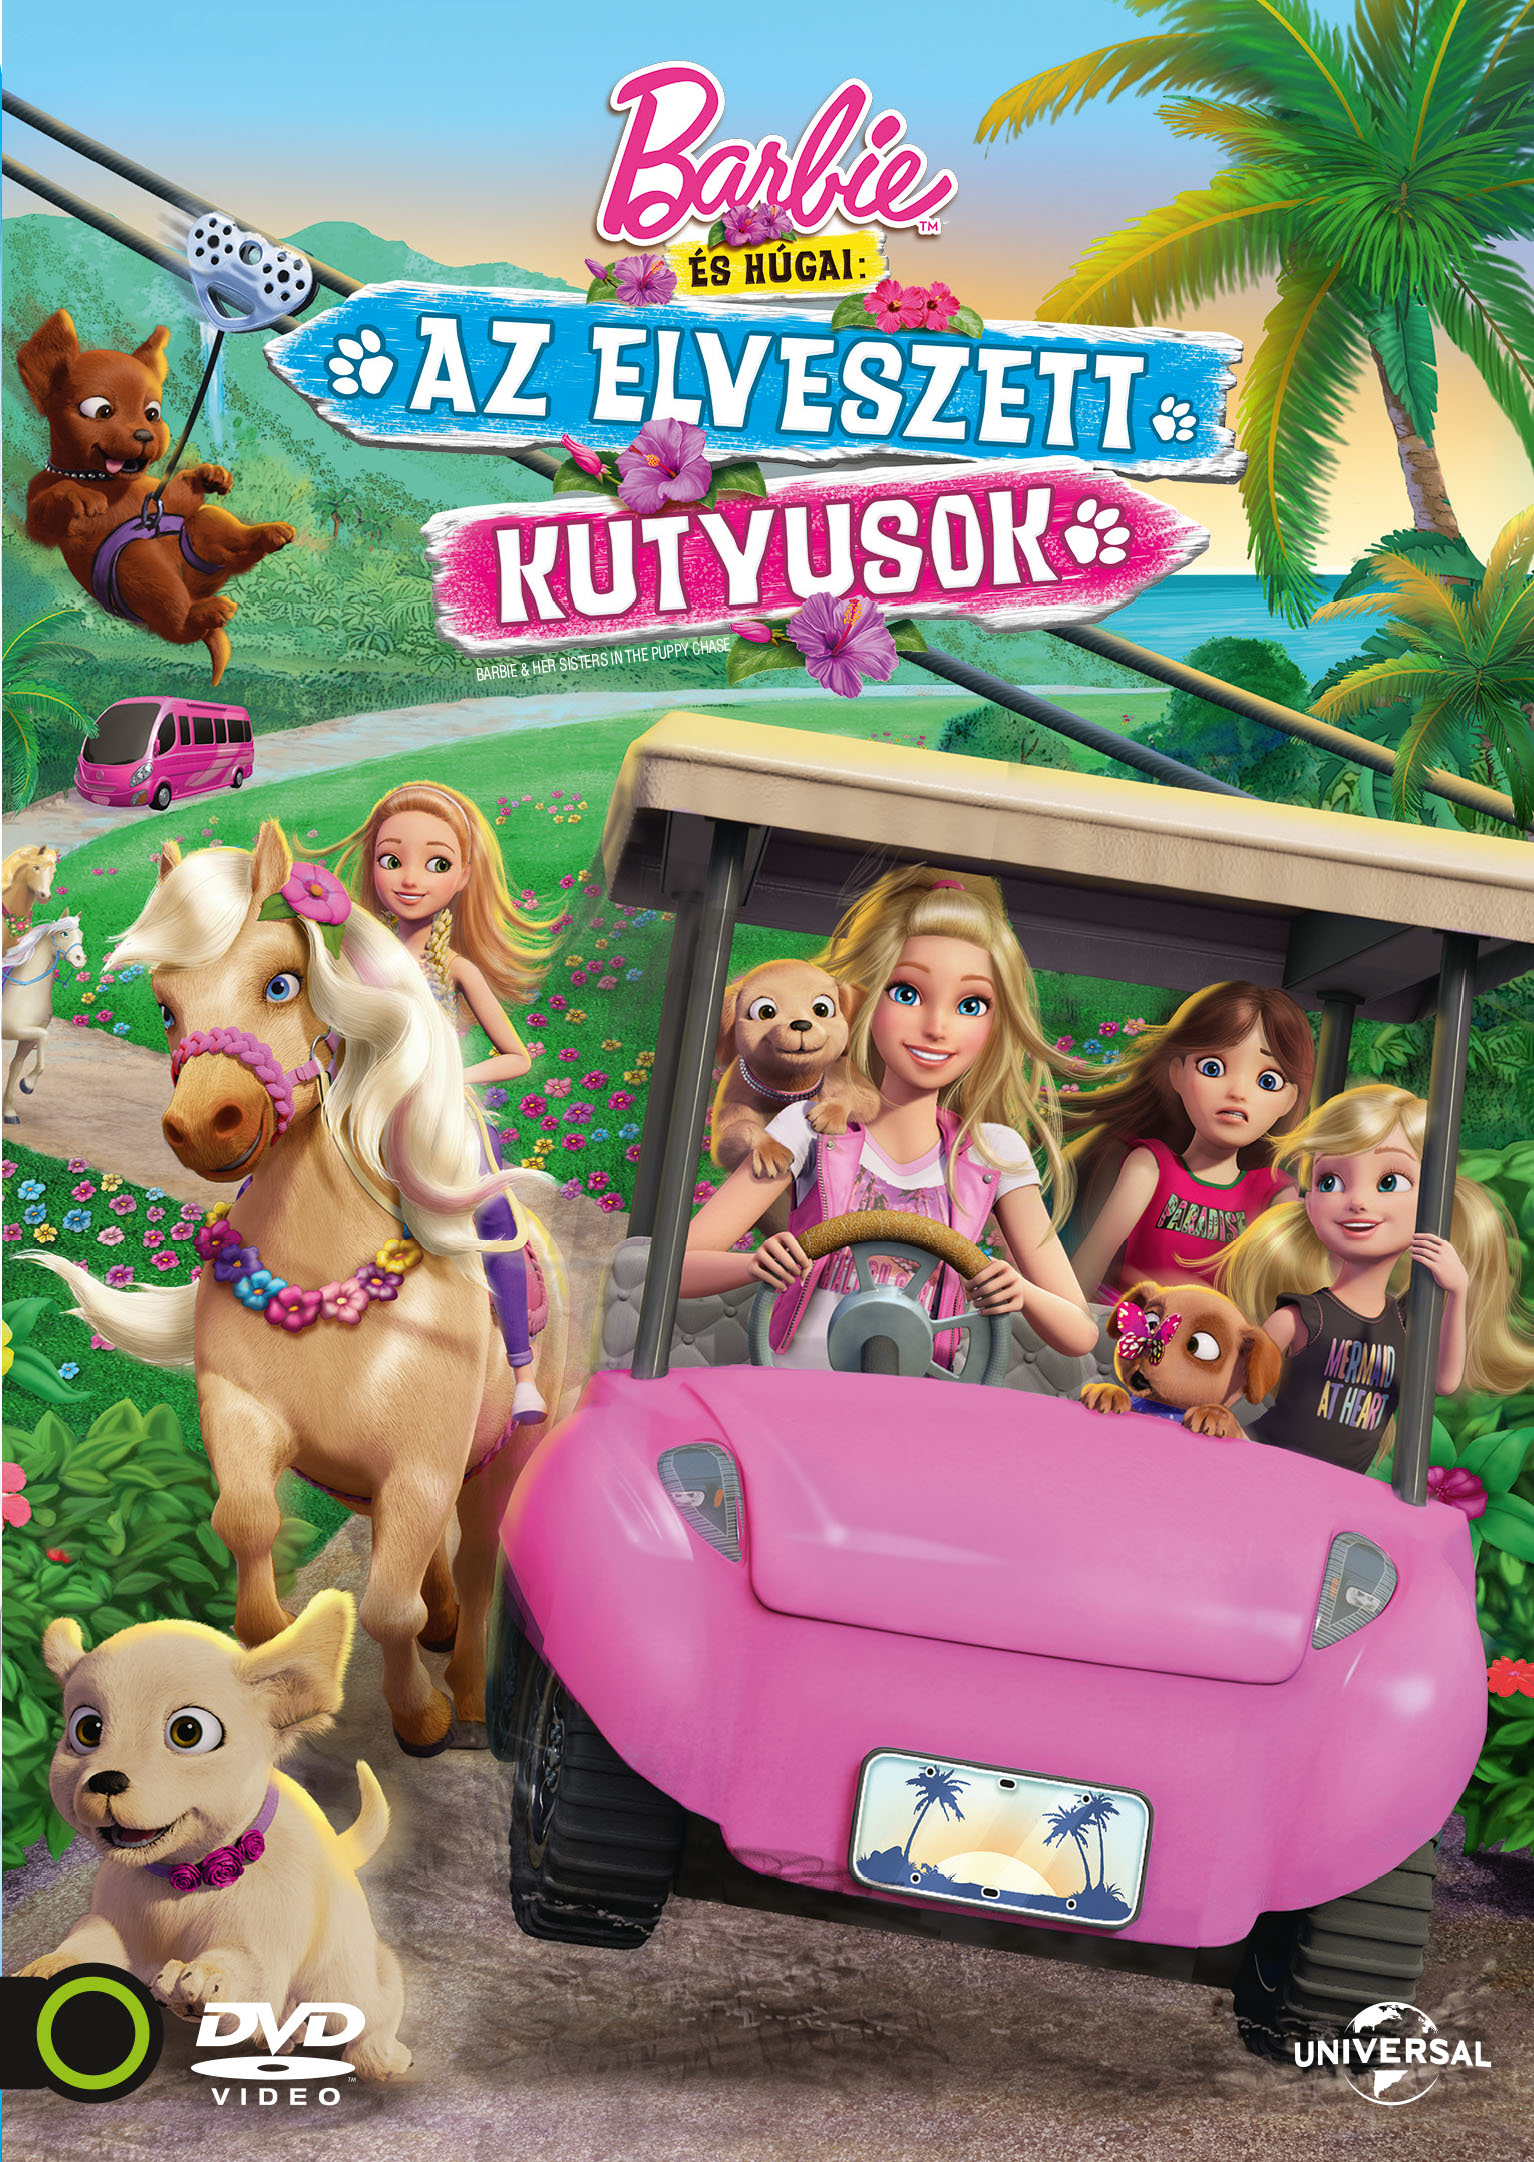 barbie_puppy_chase_hud001359_2d.jpg